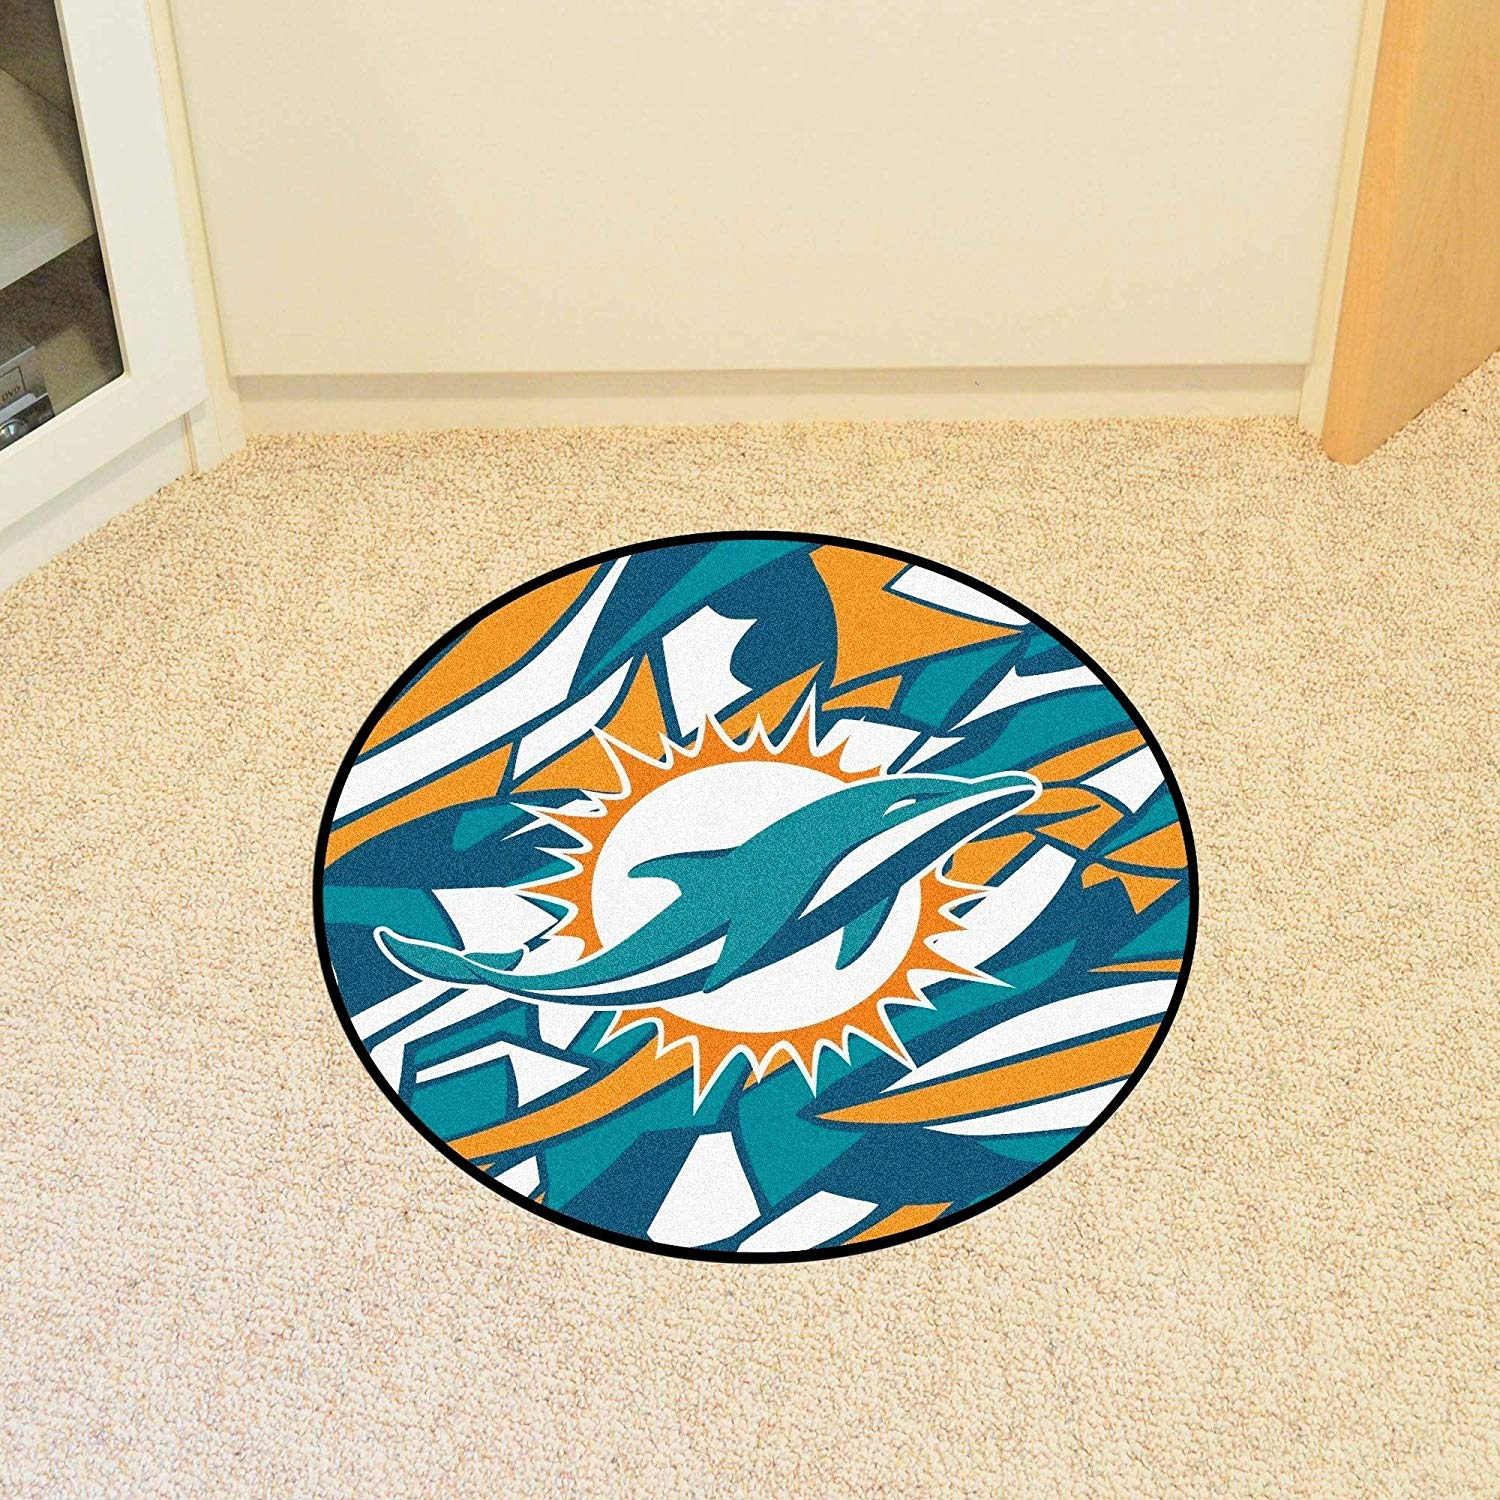 27 Inch NFL Miami Dolphins Mat Team Logo Sports Football Round Rug Geometric Design Floor Carpet Home Office Bedroom Bath Area Rug Game Fans Gift Non